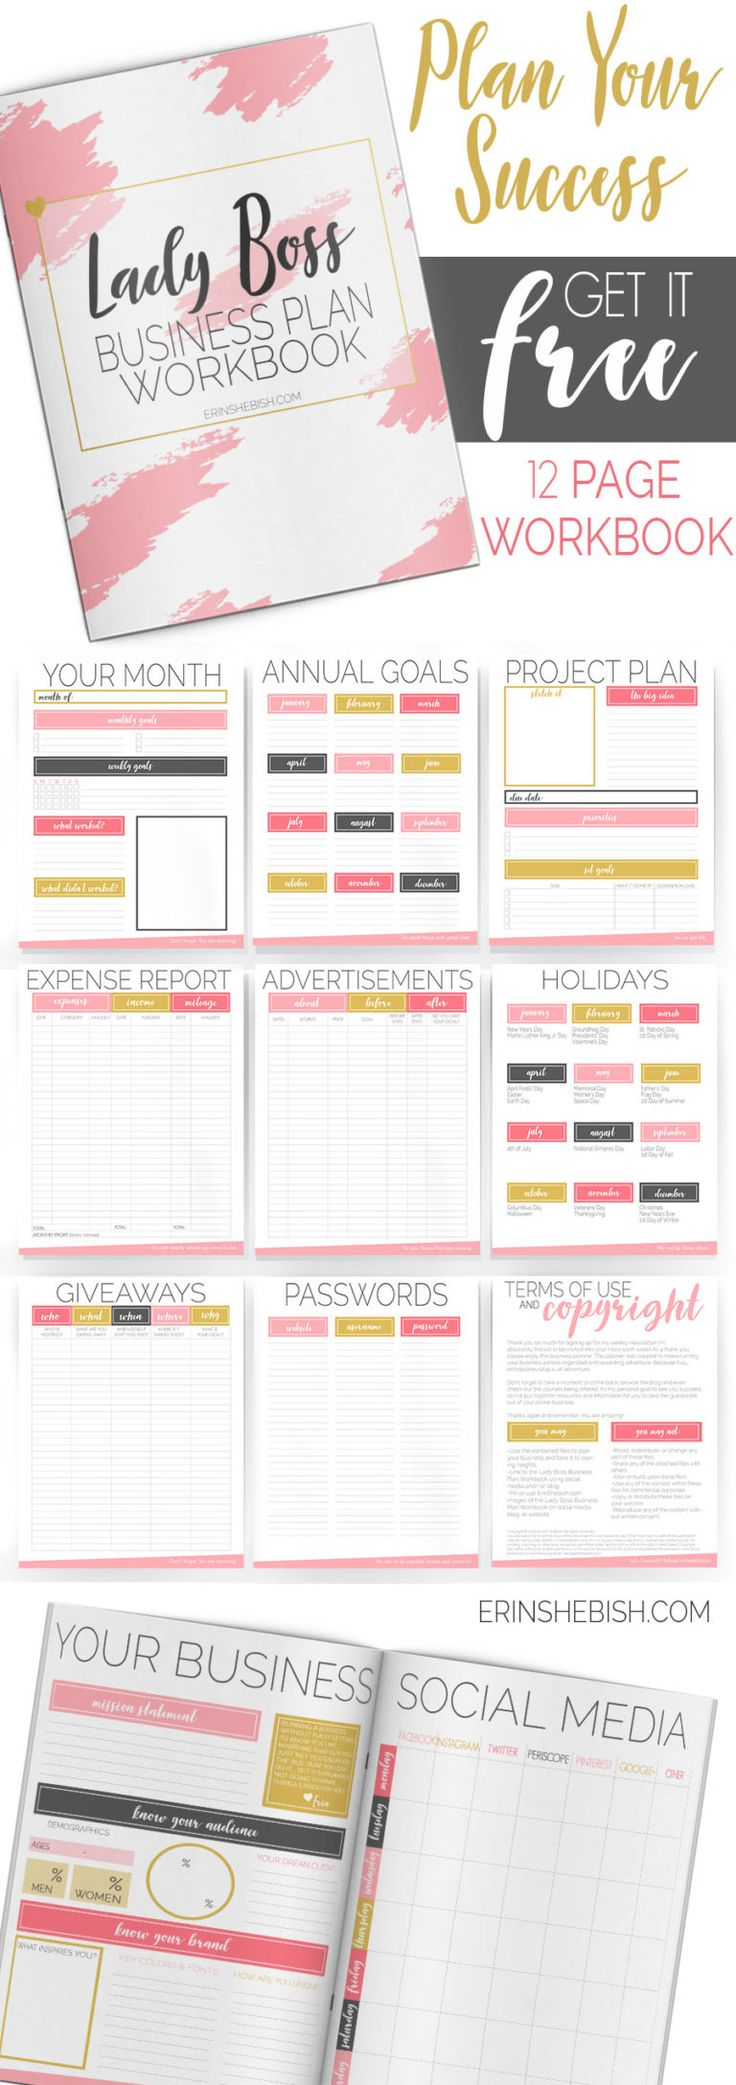 Get The Lady Boss Biz Planner Business planner, How to